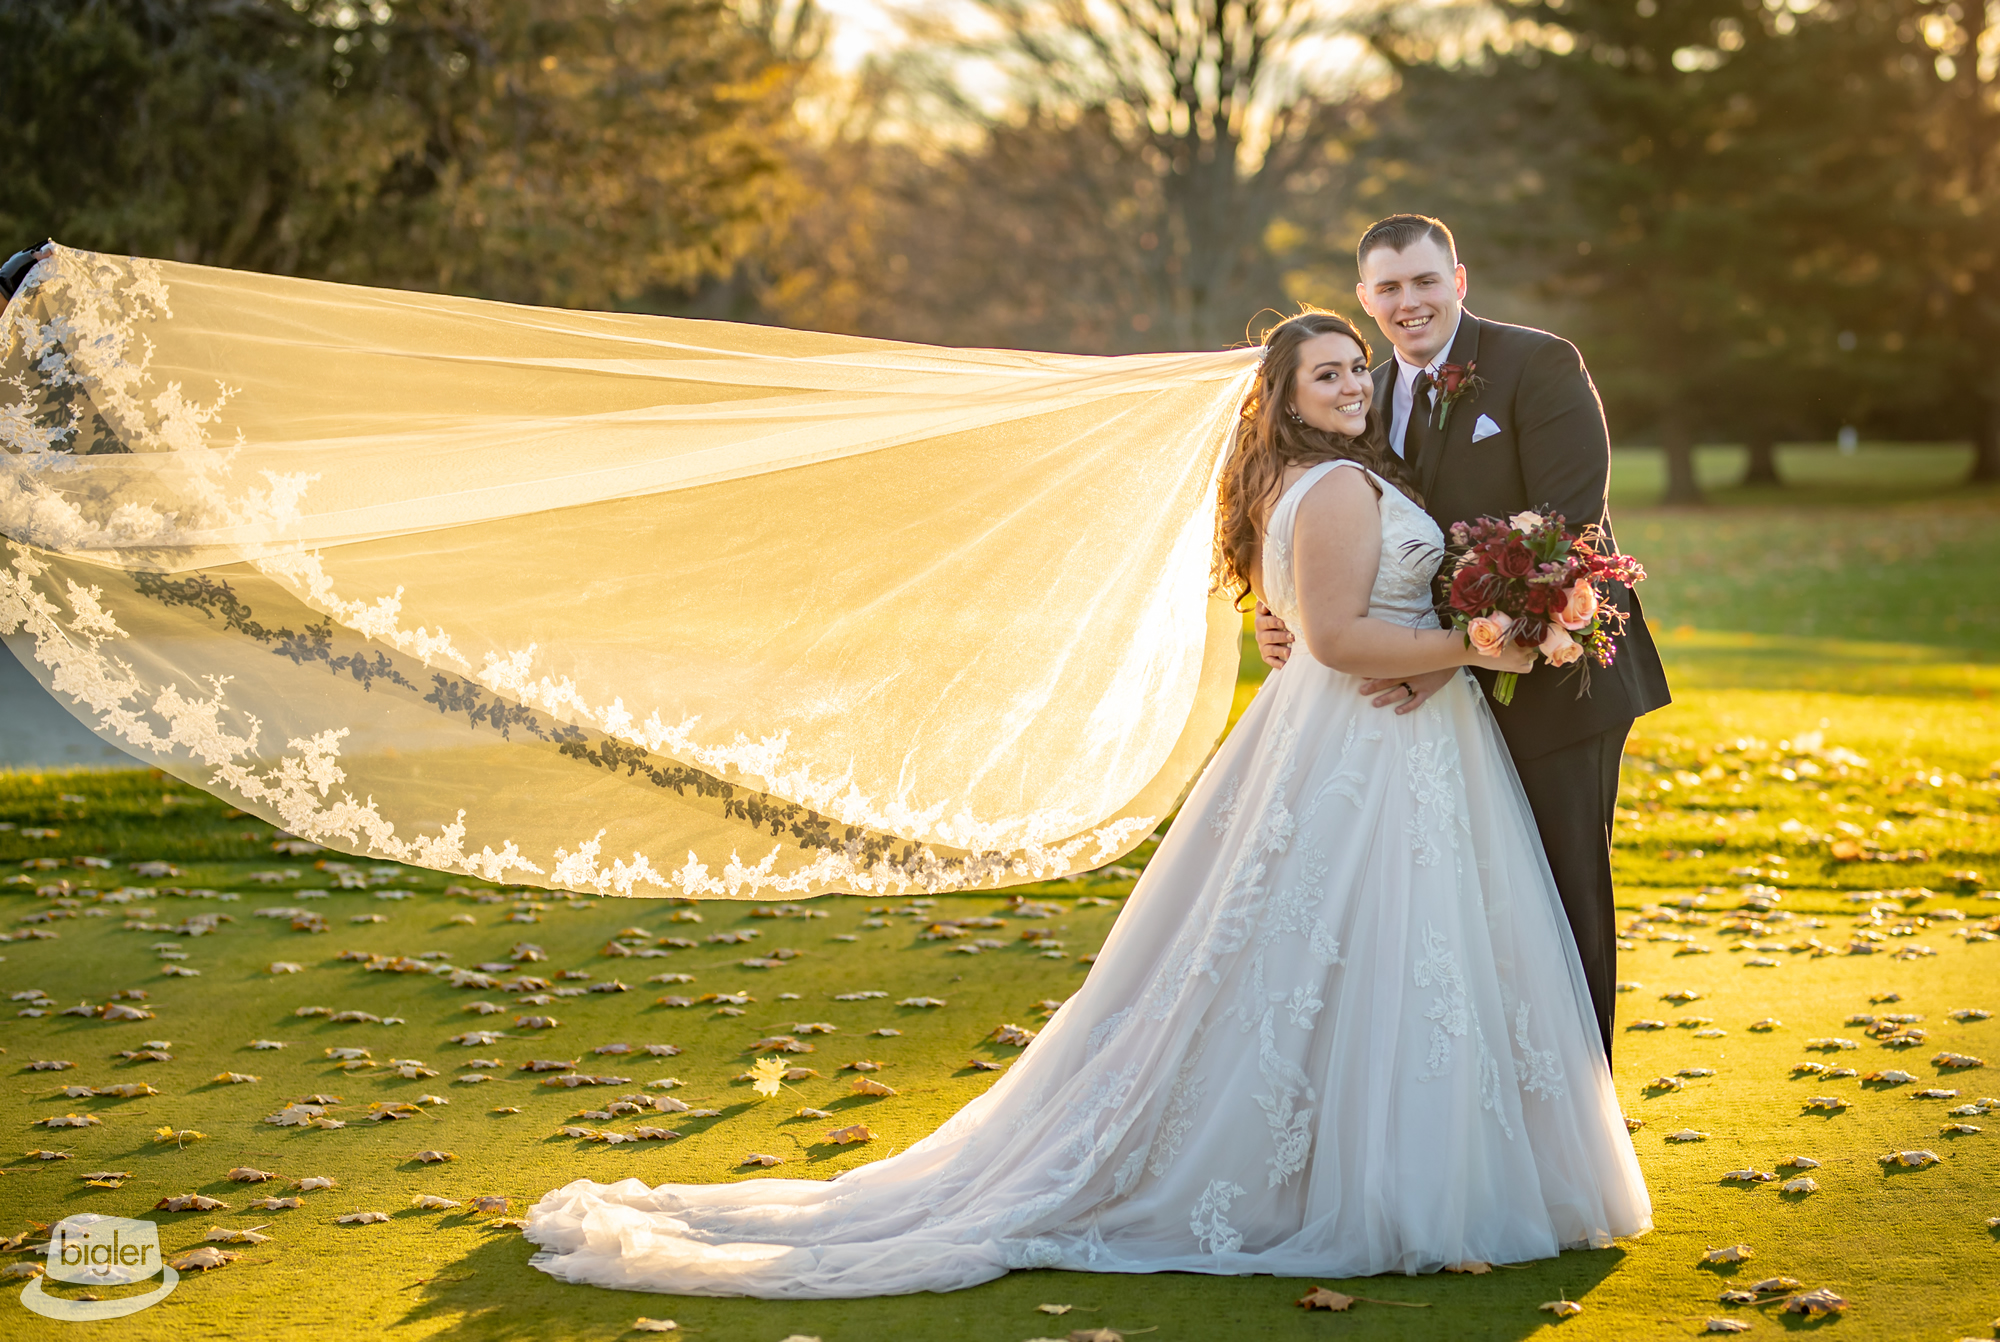 20181110_-_18_-_Amanda_and_Michael,_Albany_Country_Club,_Wedding_Photos